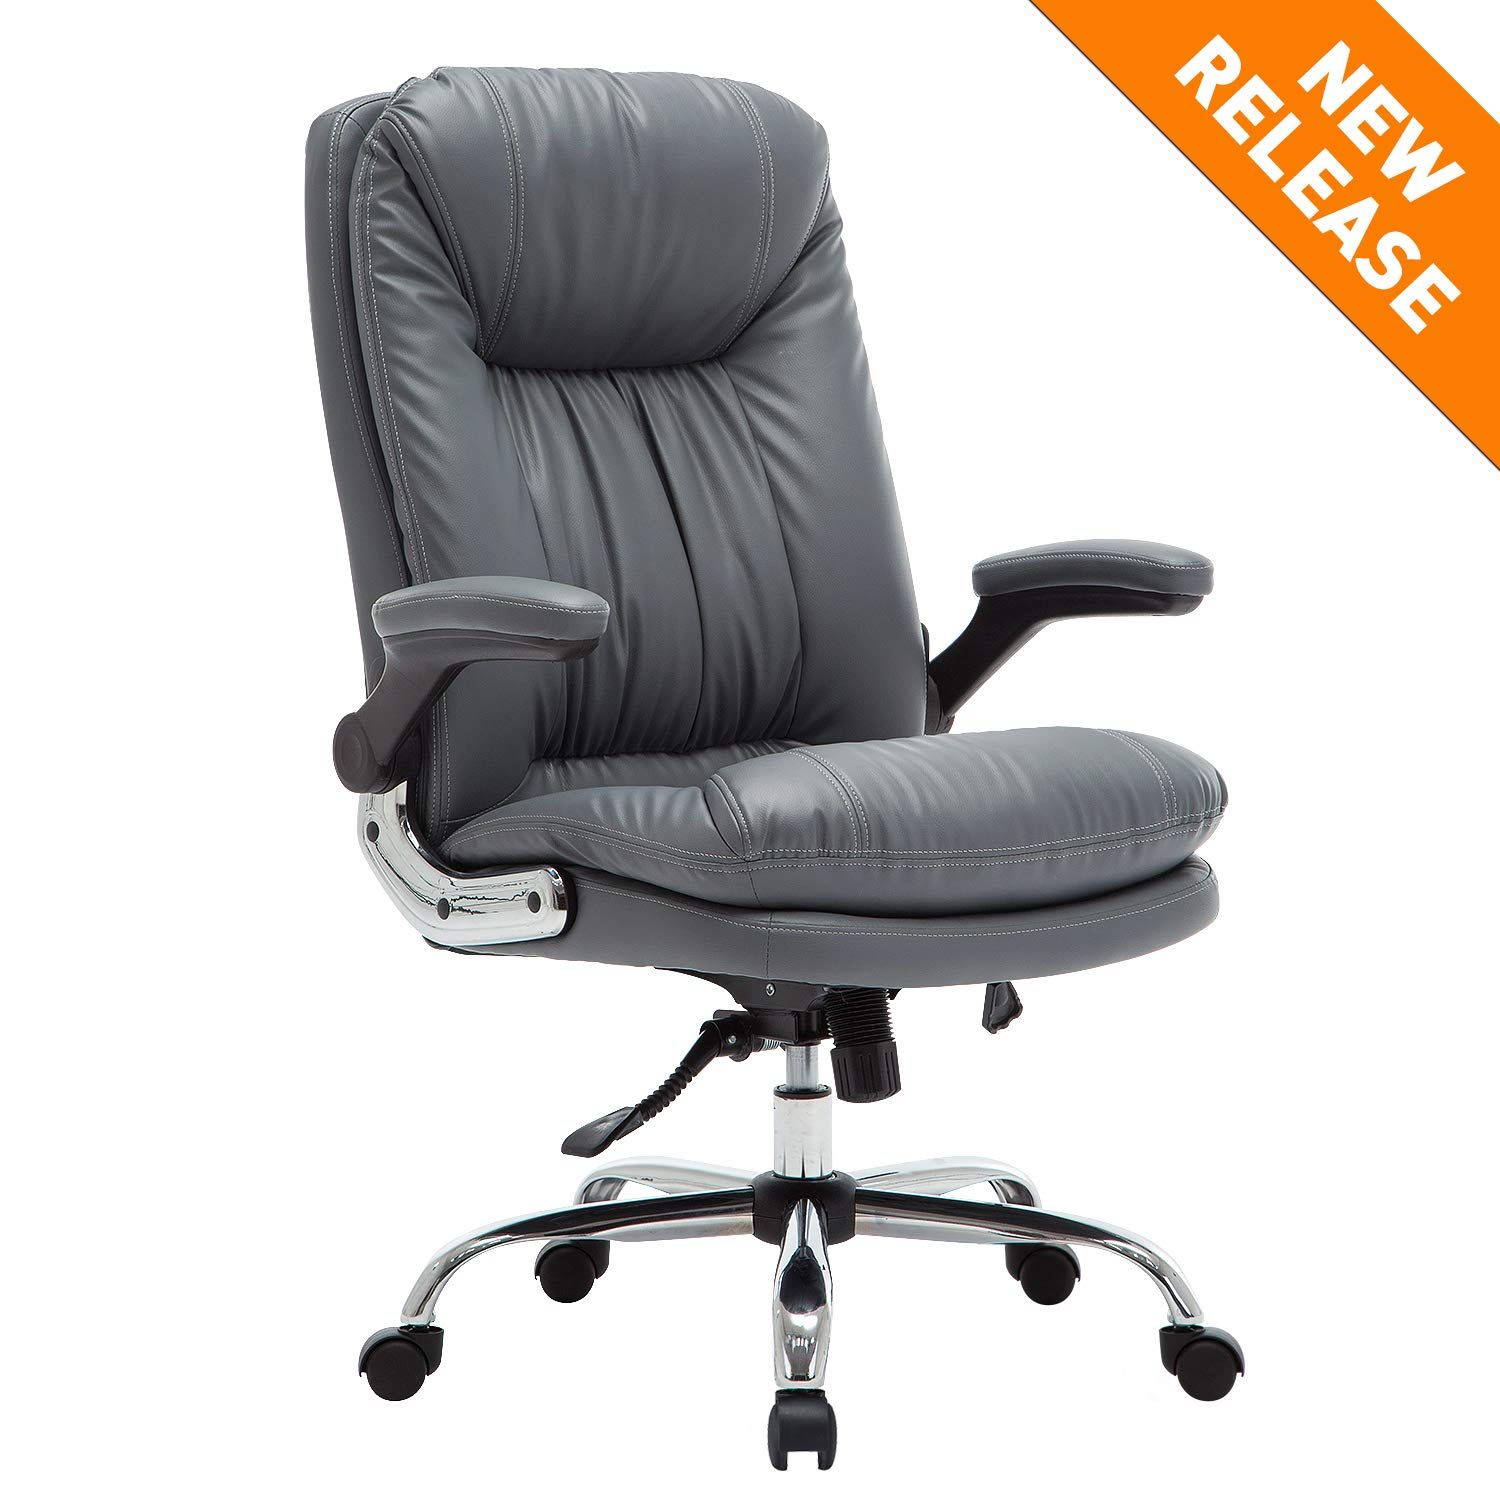 YAMASORO Ergonomic Office Chair with FlipUp Arms and